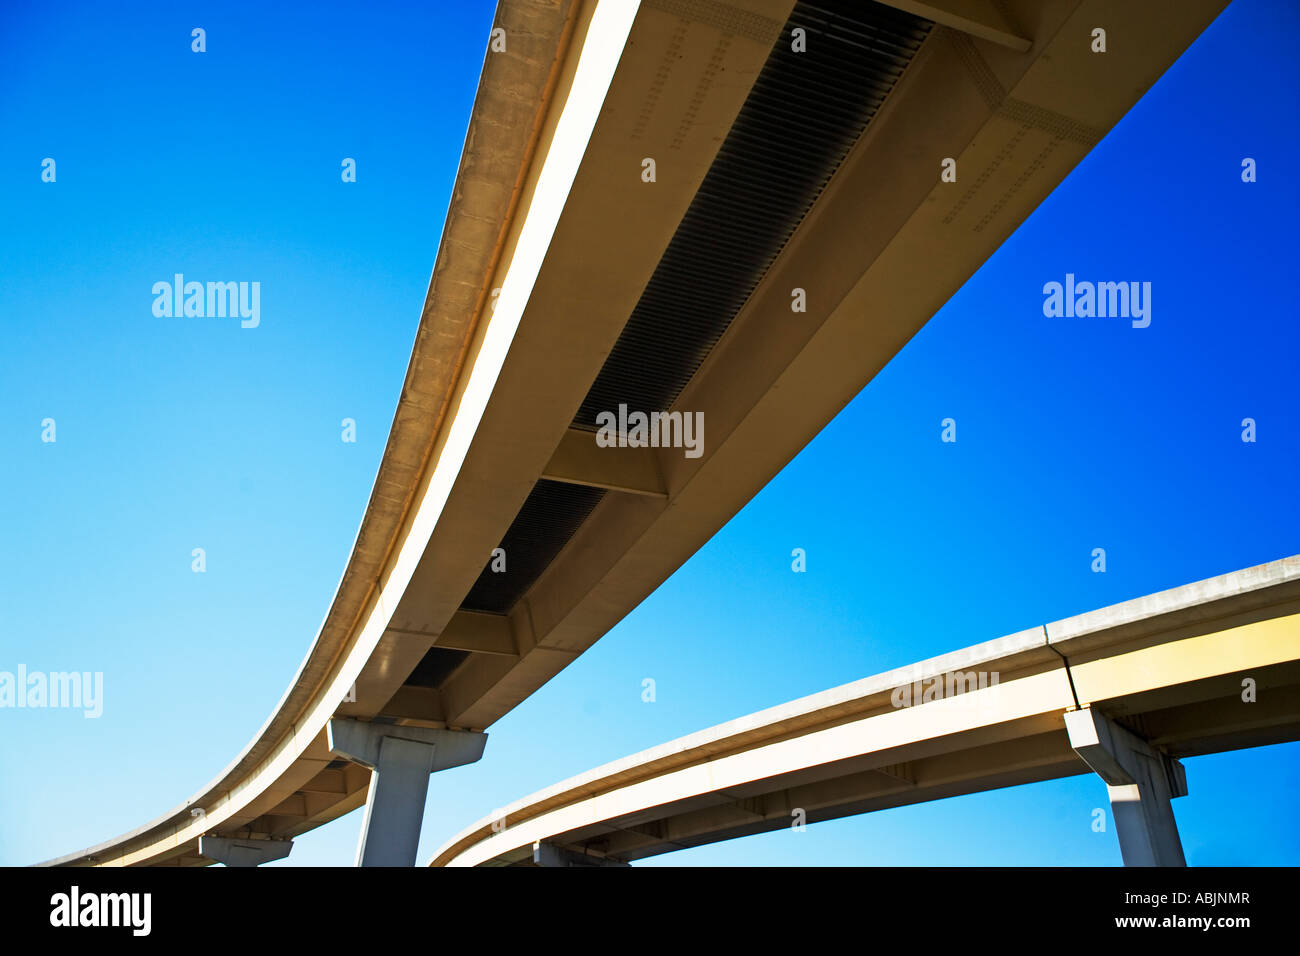 Low angle view of raised roadway - Stock Image